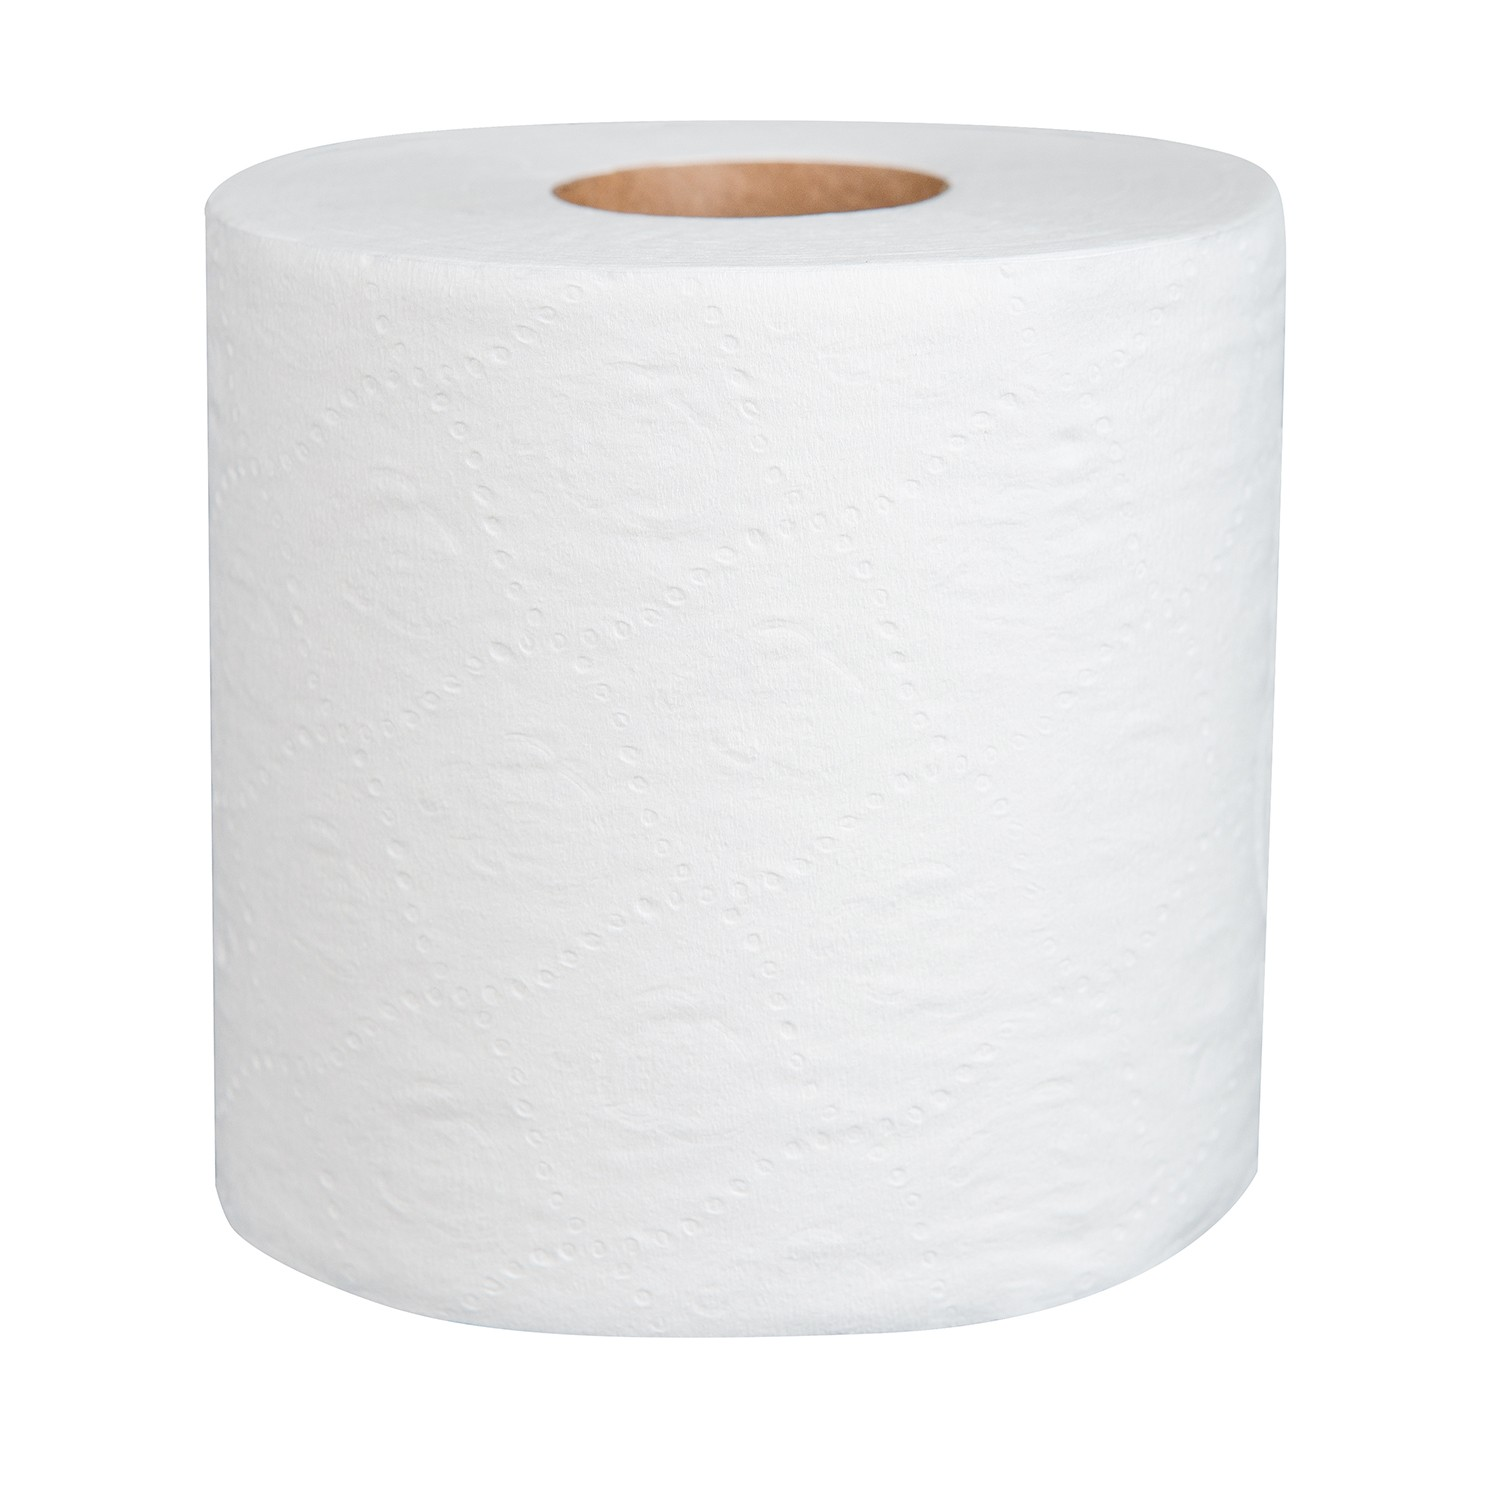 """TOTALPACK® 4.5 x 3.5"""", 2 Ply High quality tissue 500 Sheets, 48 Rolls per Case"""